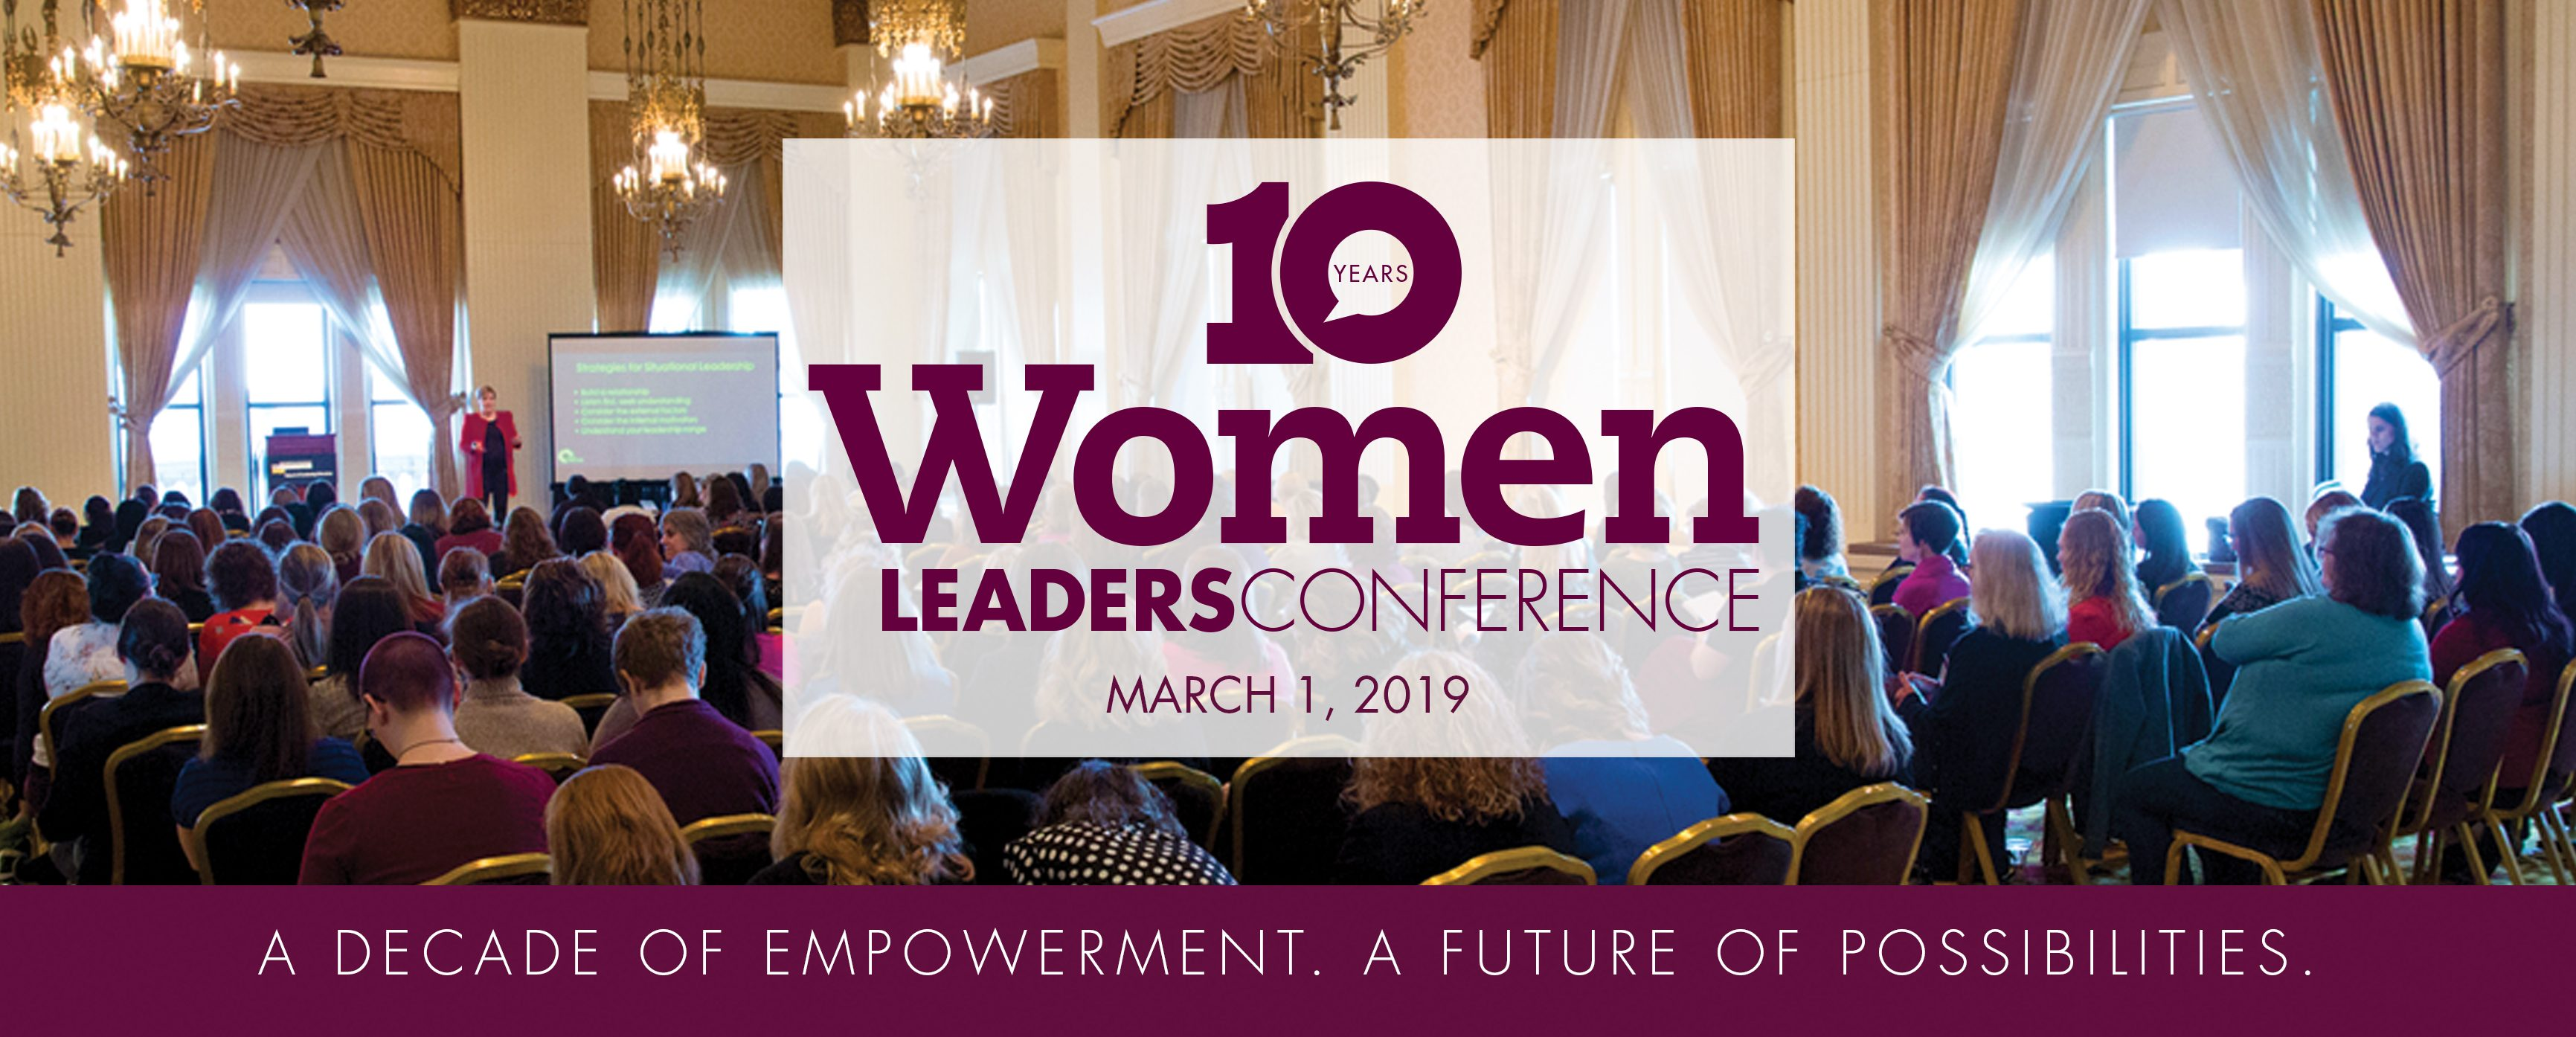 10th Women Leaders Conference